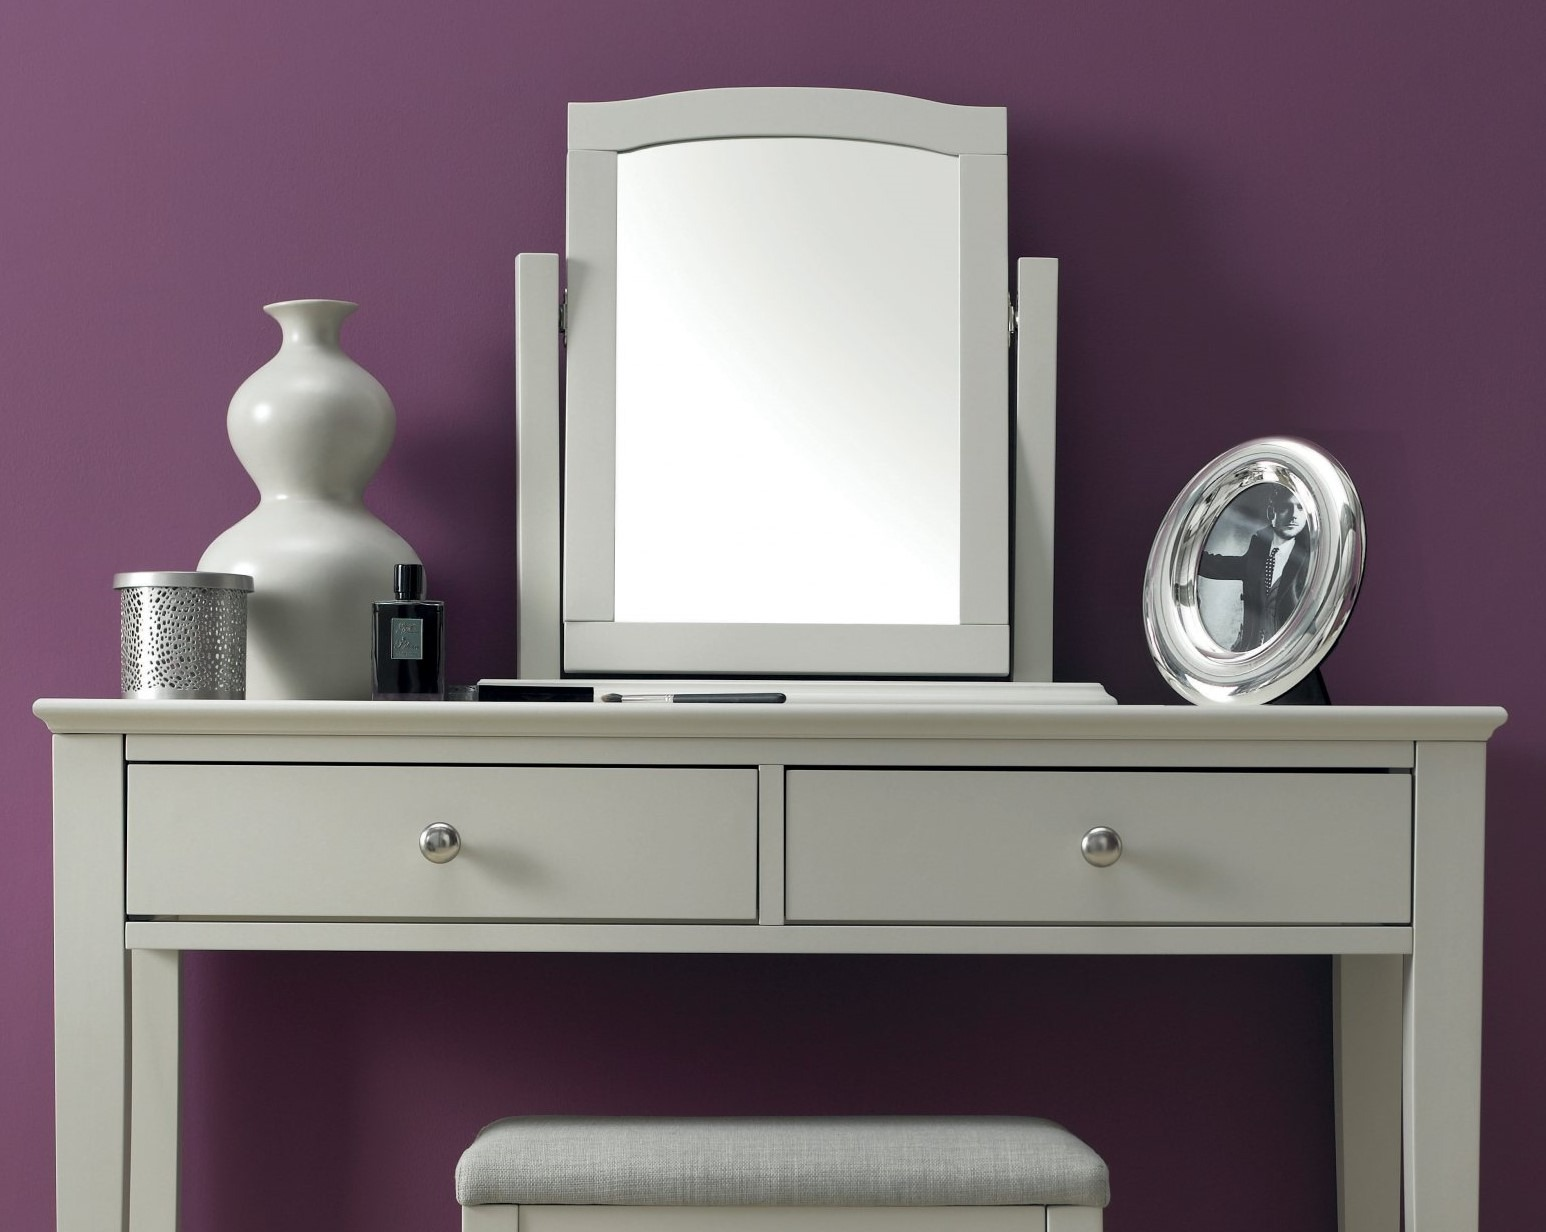 ASHLEY GREY BEDROOM MIRROR - L52cm x D18cm x H53cm.